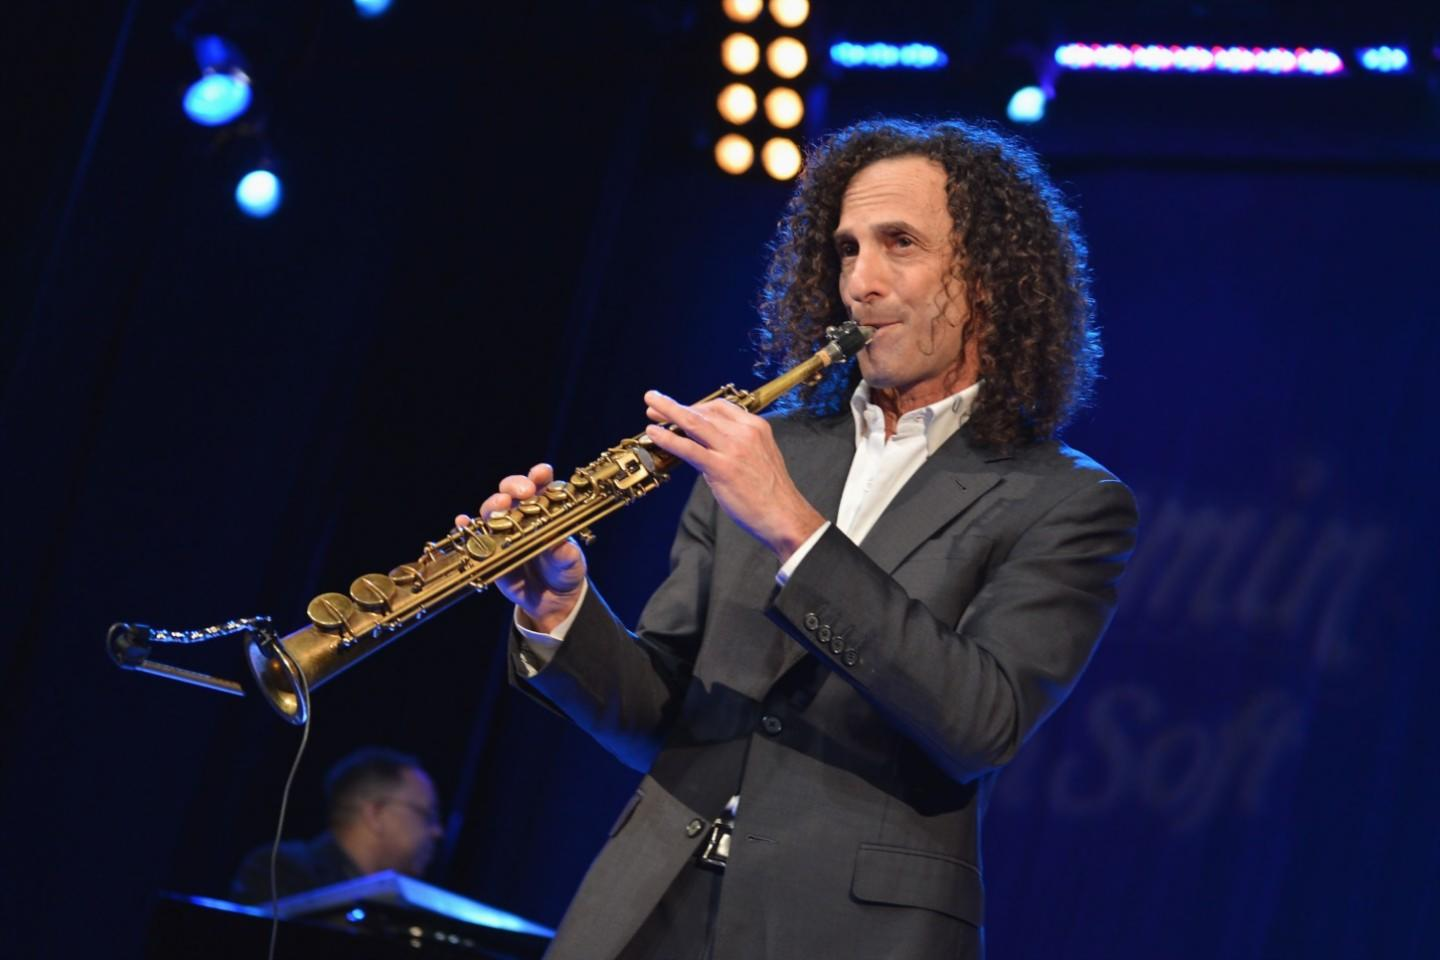 Kenny G Tickets | Kenny G Tour Dates 2018 and Concert Tickets - viagogo